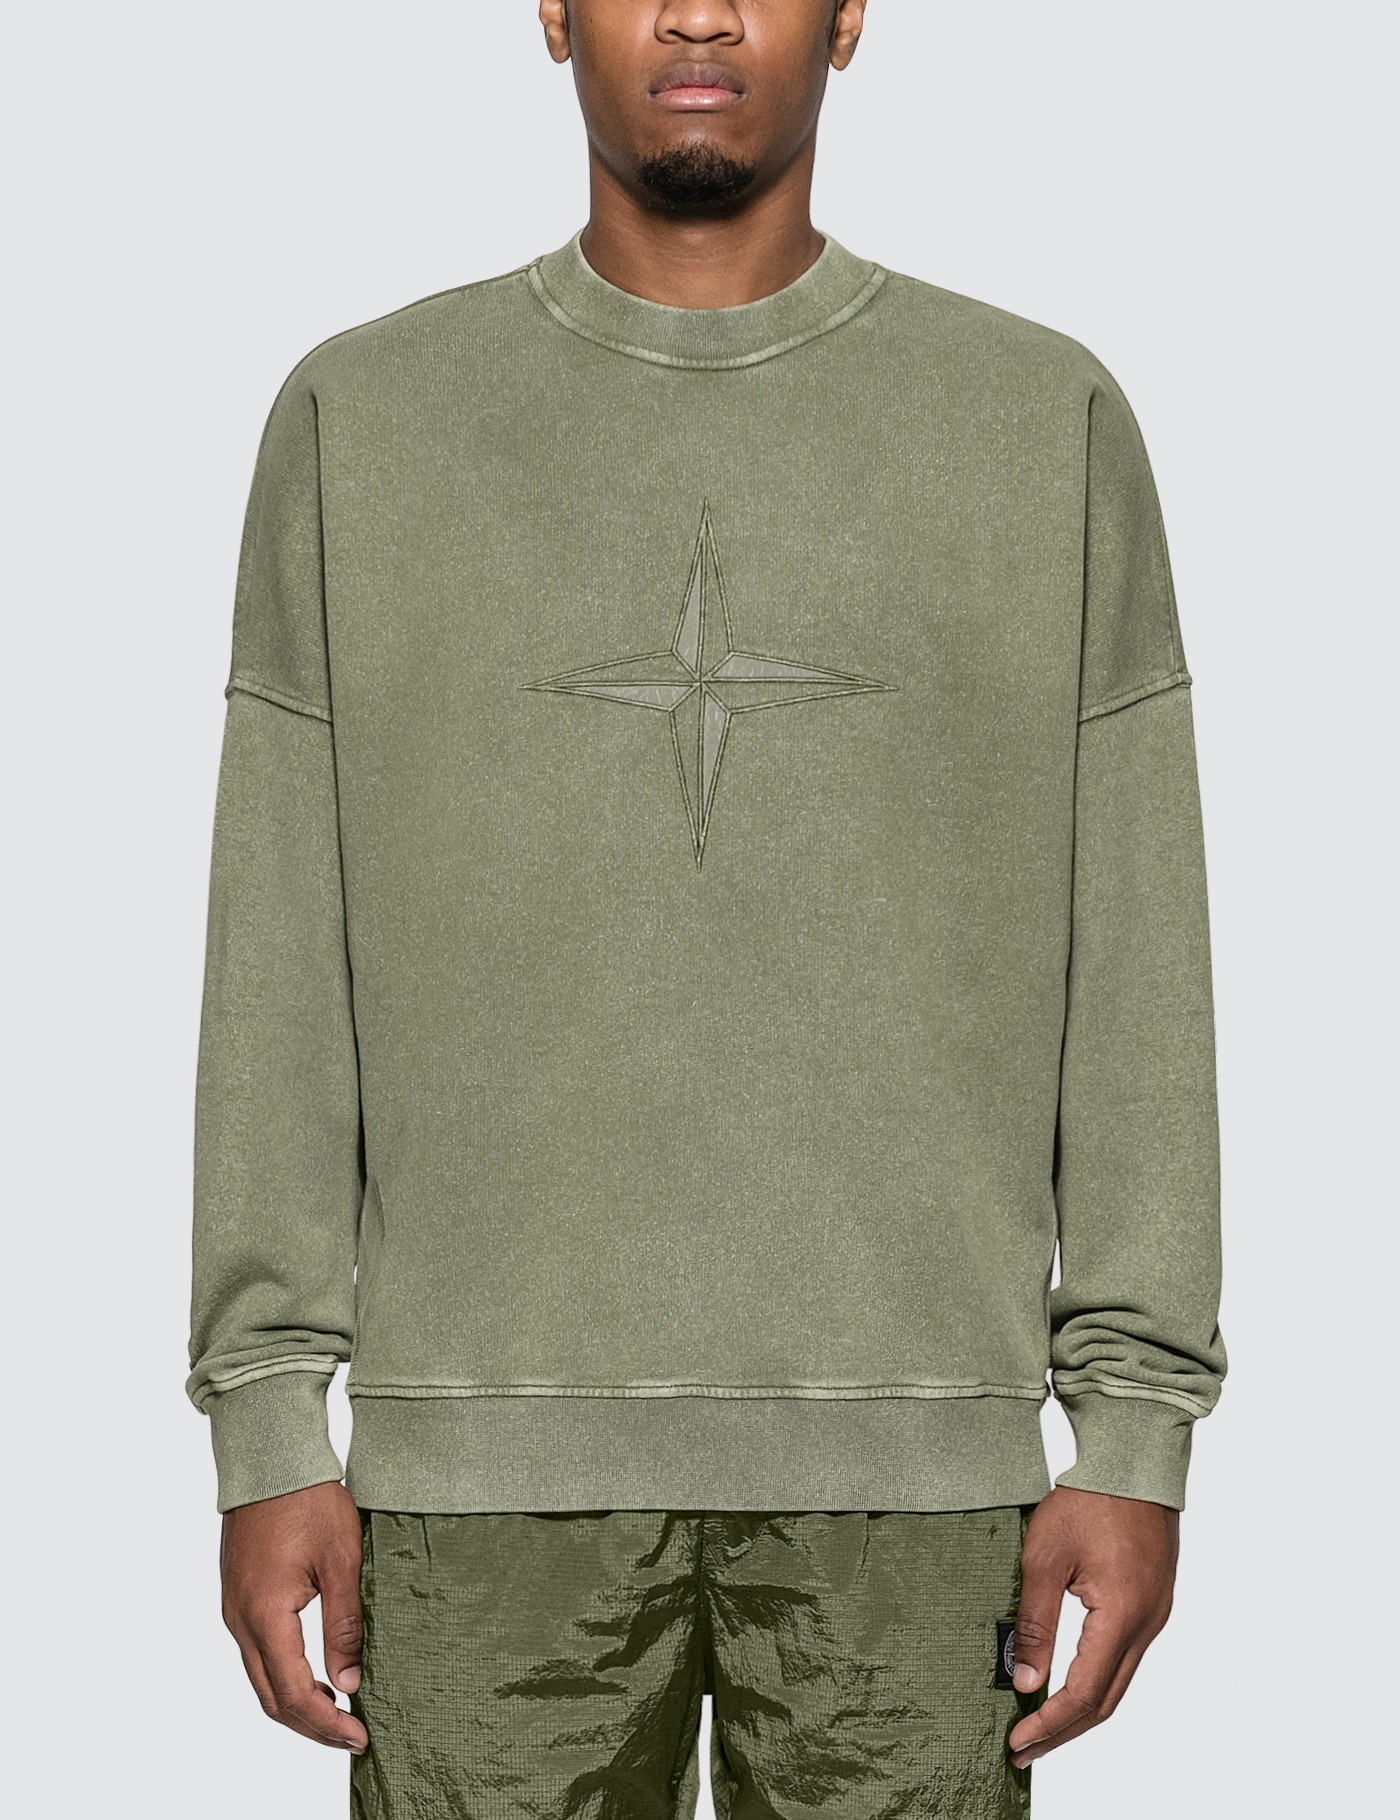 Compass Embroidered Sweatshirt